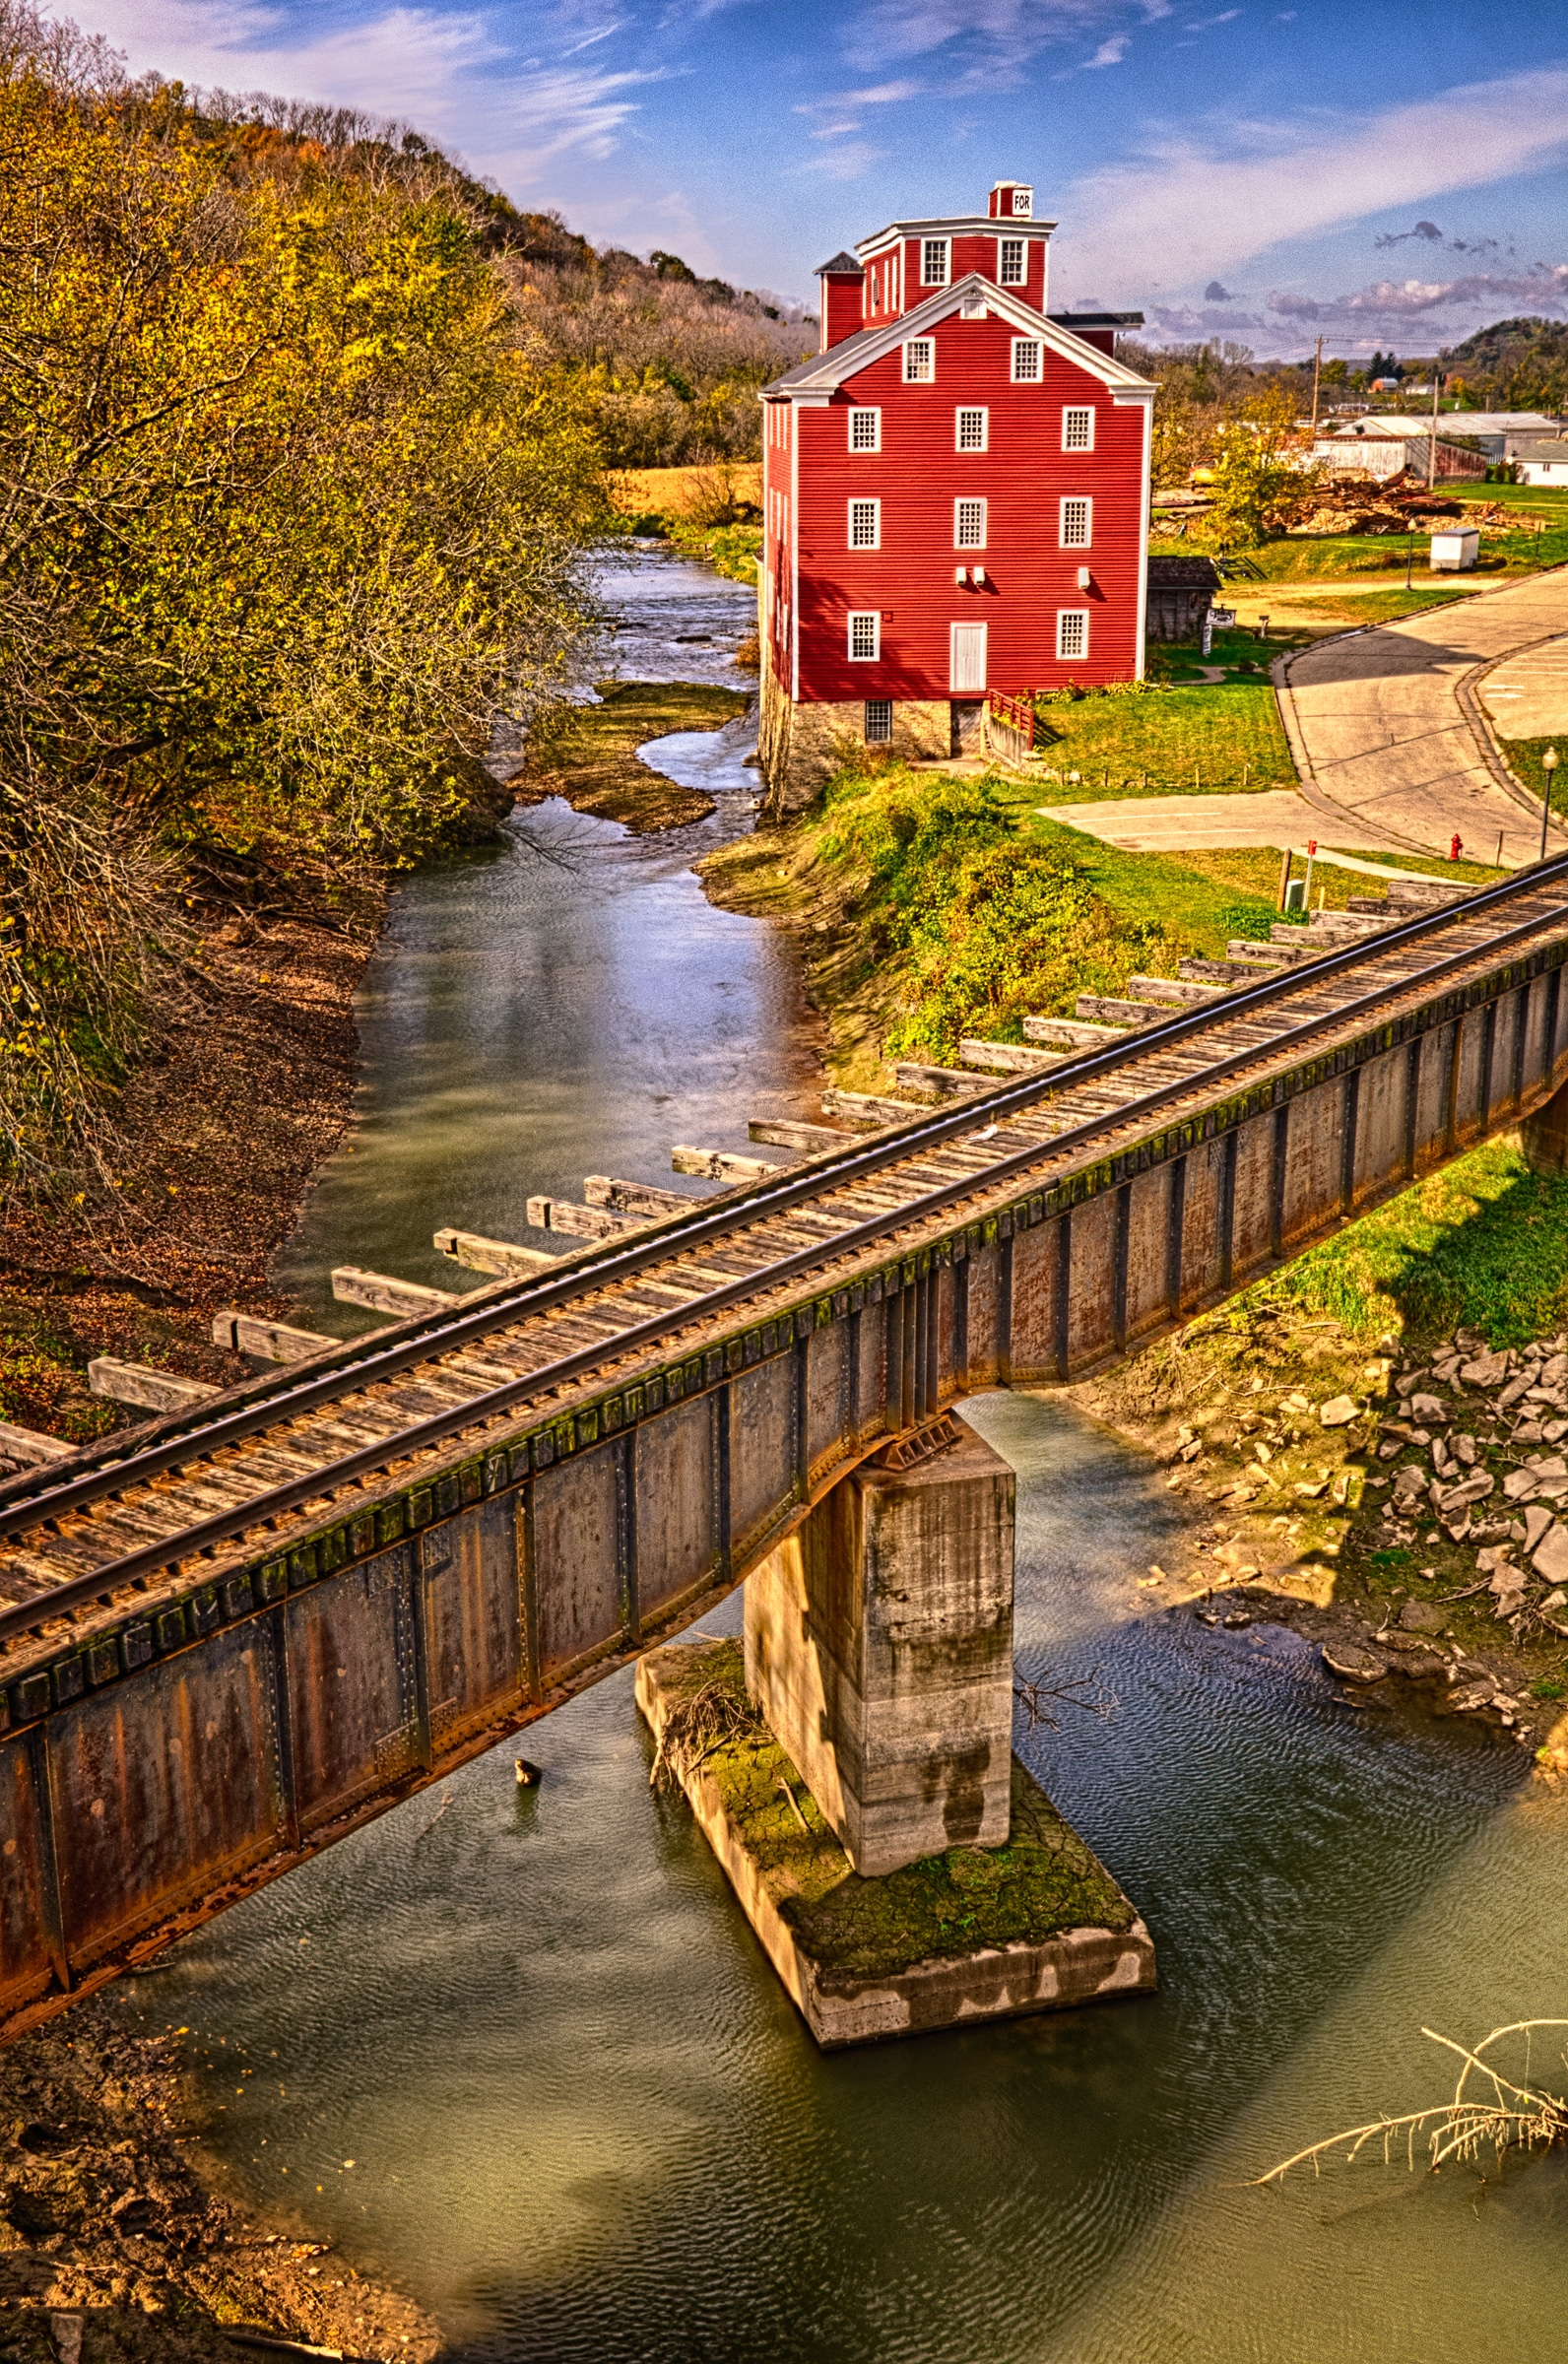 Potter's Mill in Bellevue, Iowa, along the Great River Road.